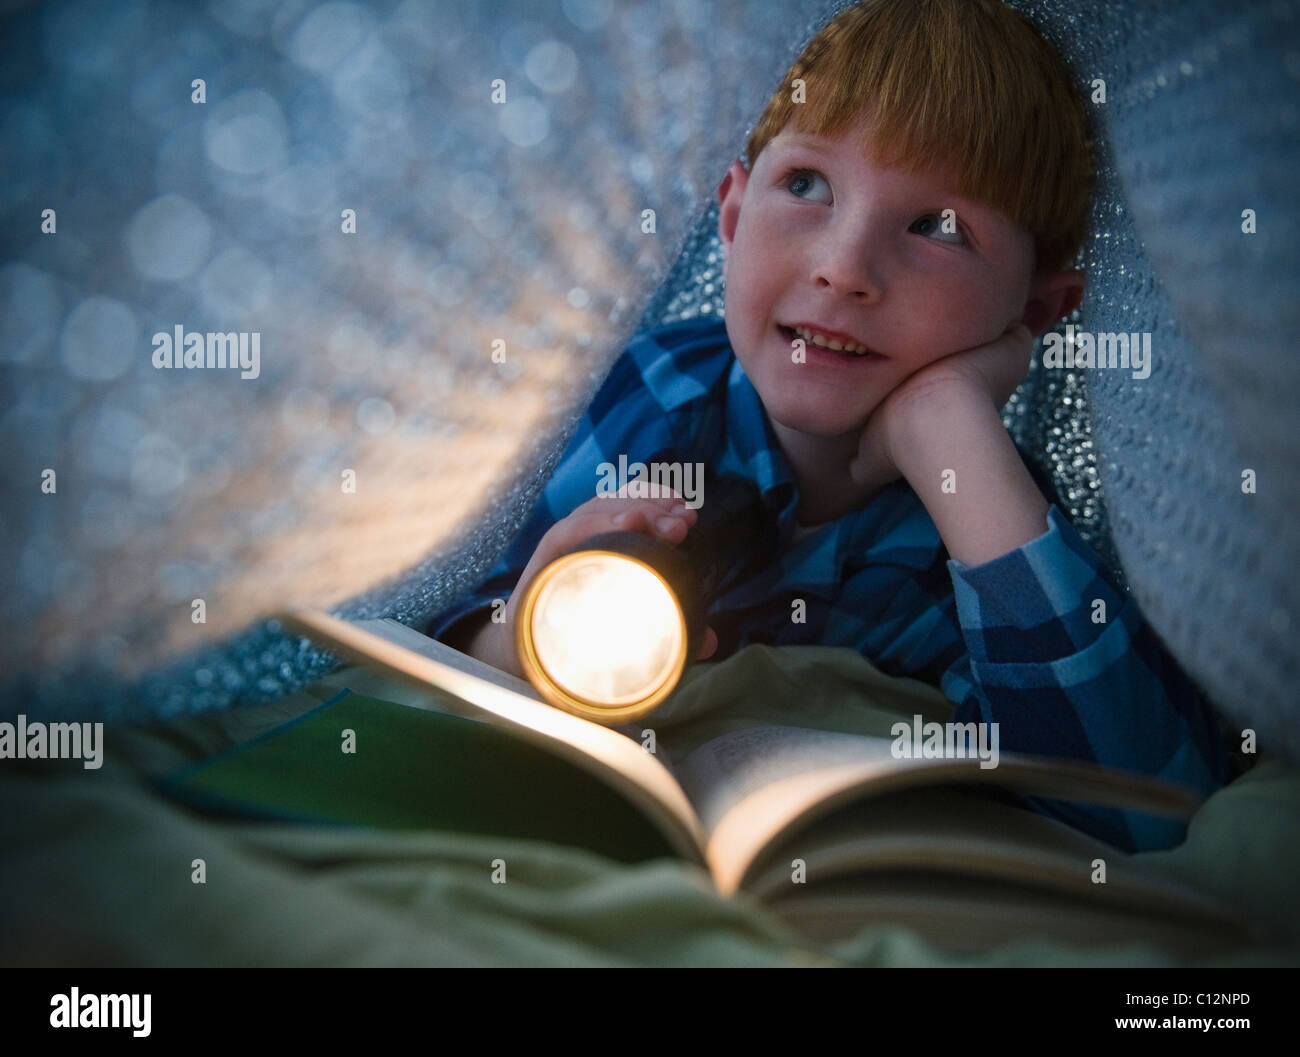 USA, New Jersey, Jersey City, Boy (8-9) reading book under bed covers Stock Photo